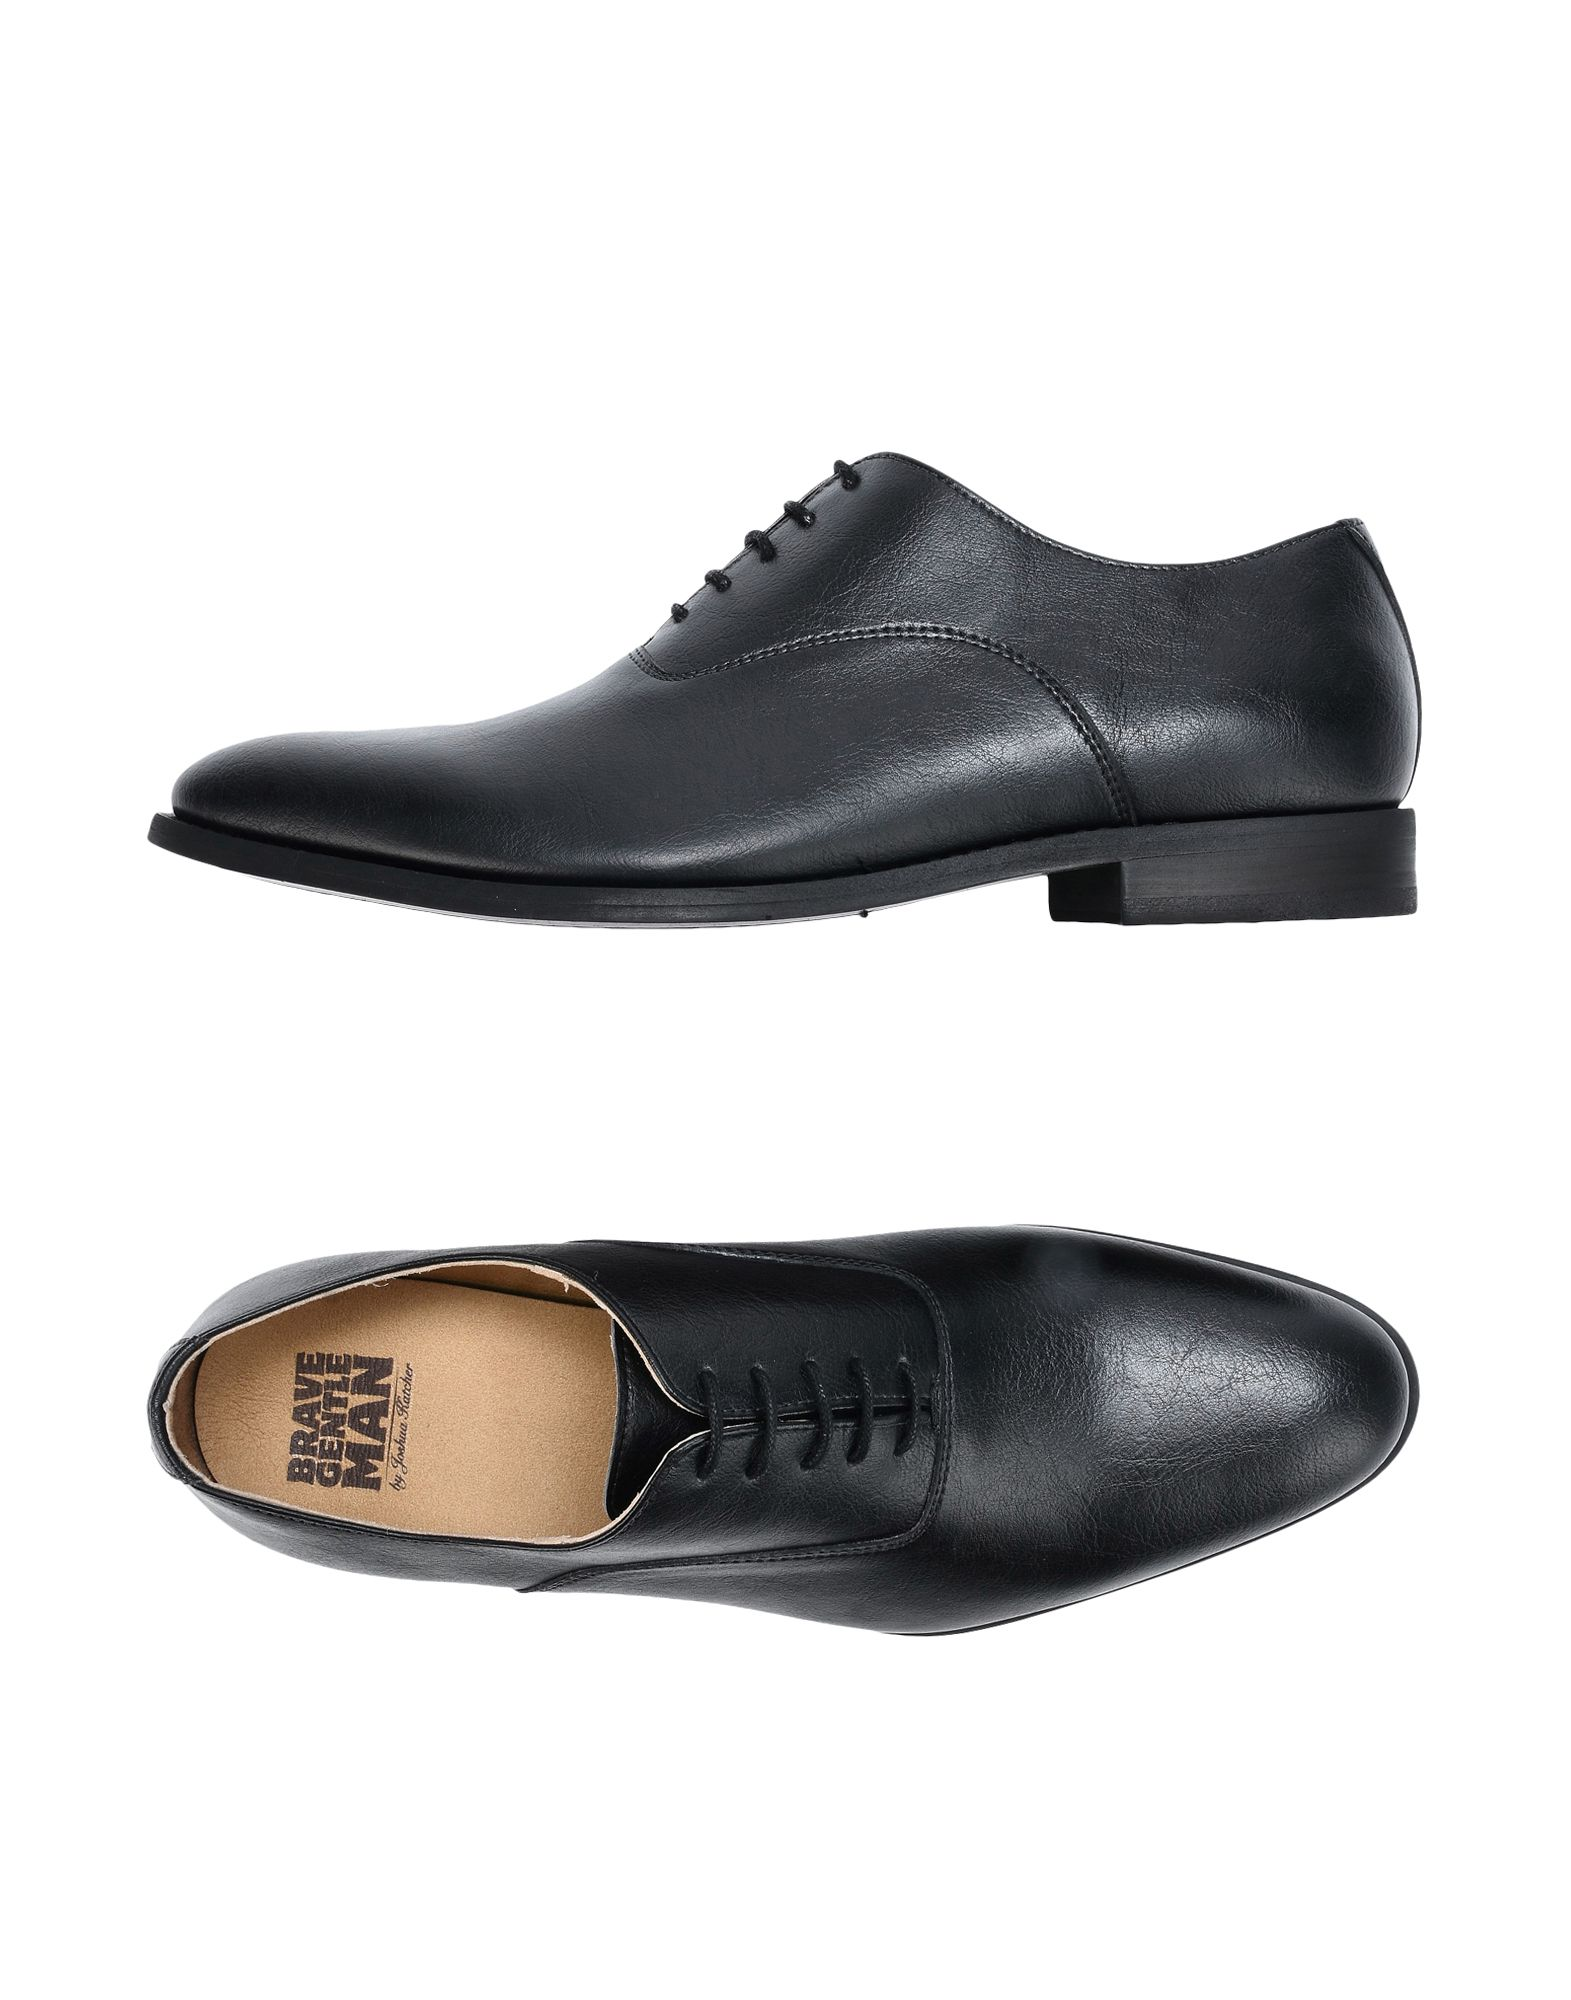 BRAVE GENTLEMAN Обувь на шнурках new arrival men casual business wedding formal dress genuine leather shoes pointed toe lace up derby shoe gentleman zapatos male